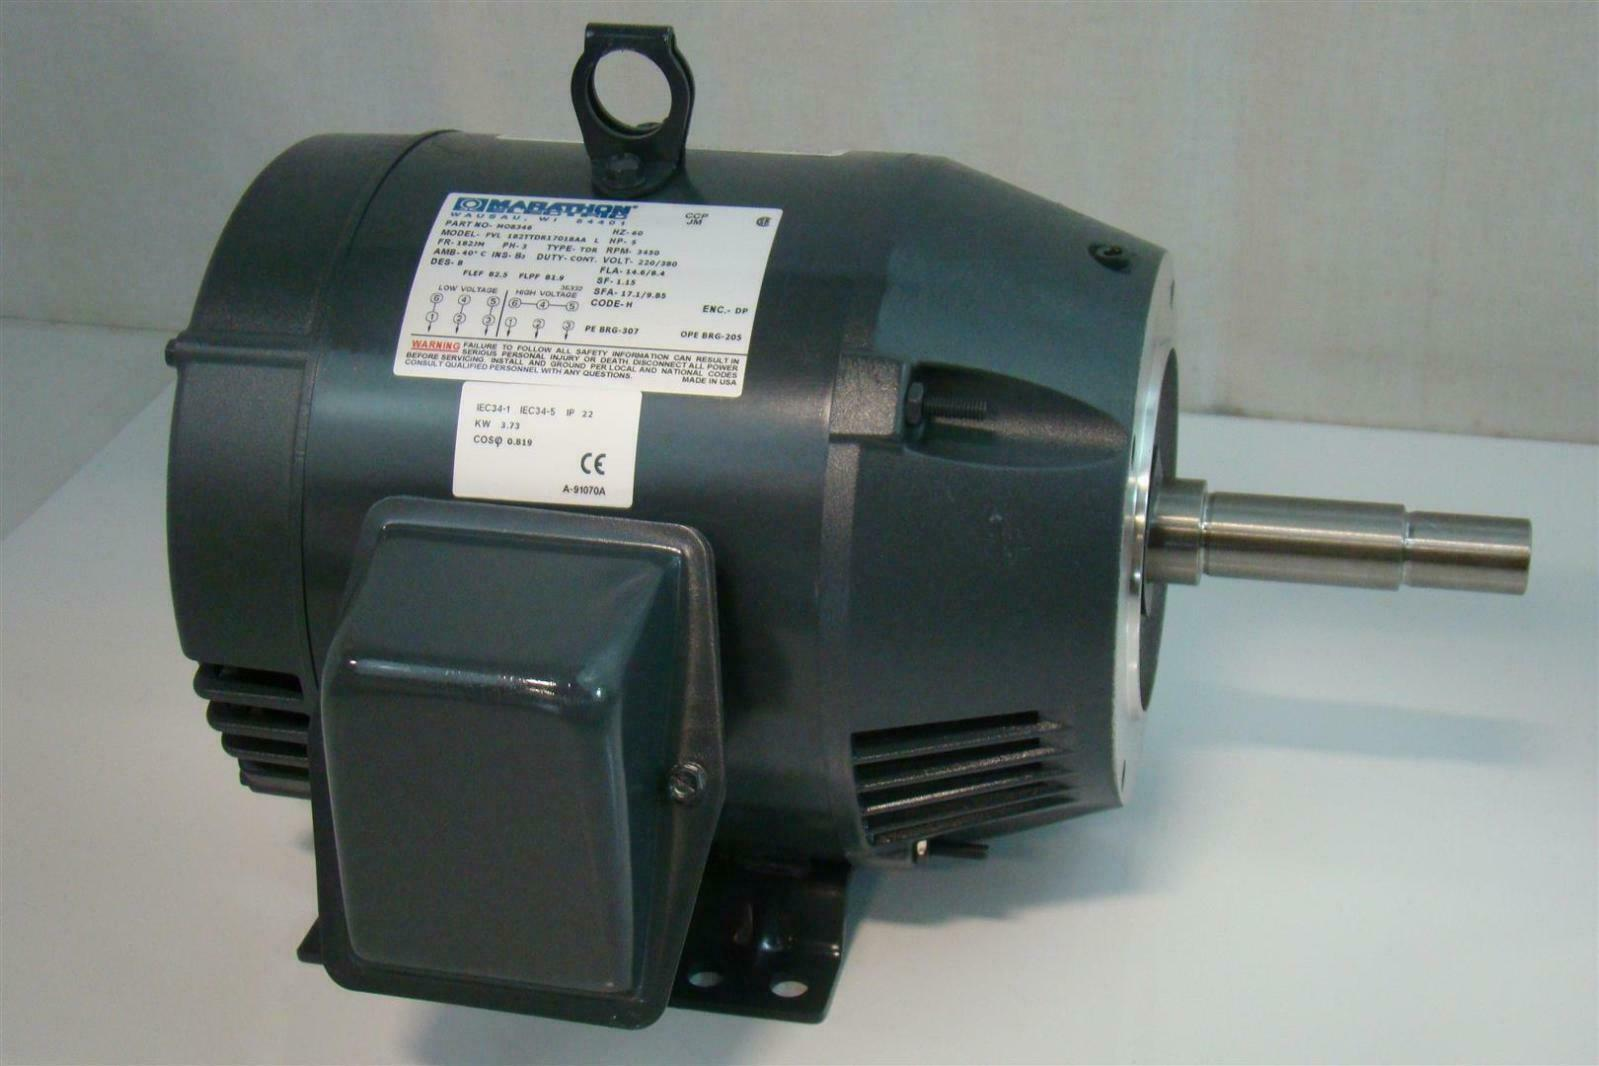 Marathon electric motor 5hp rpm 3450 220 380v ph3 fvl for Marathon electric motors model numbers